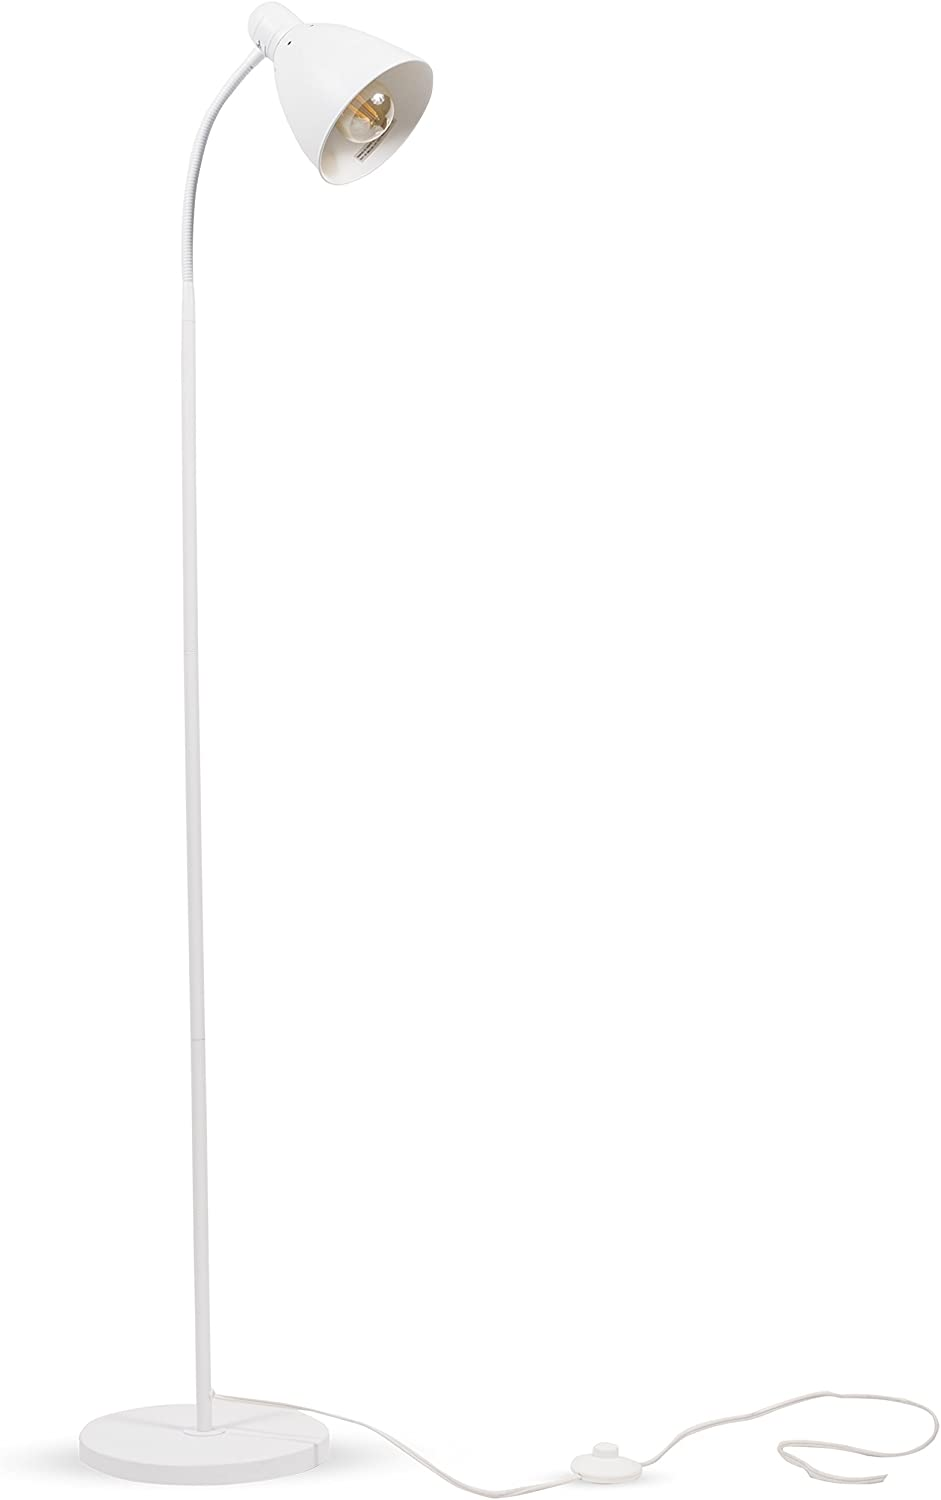 Wallniture Adjustable Reading Floor Lamp with Foot Control On Off Switch White 1 Pack